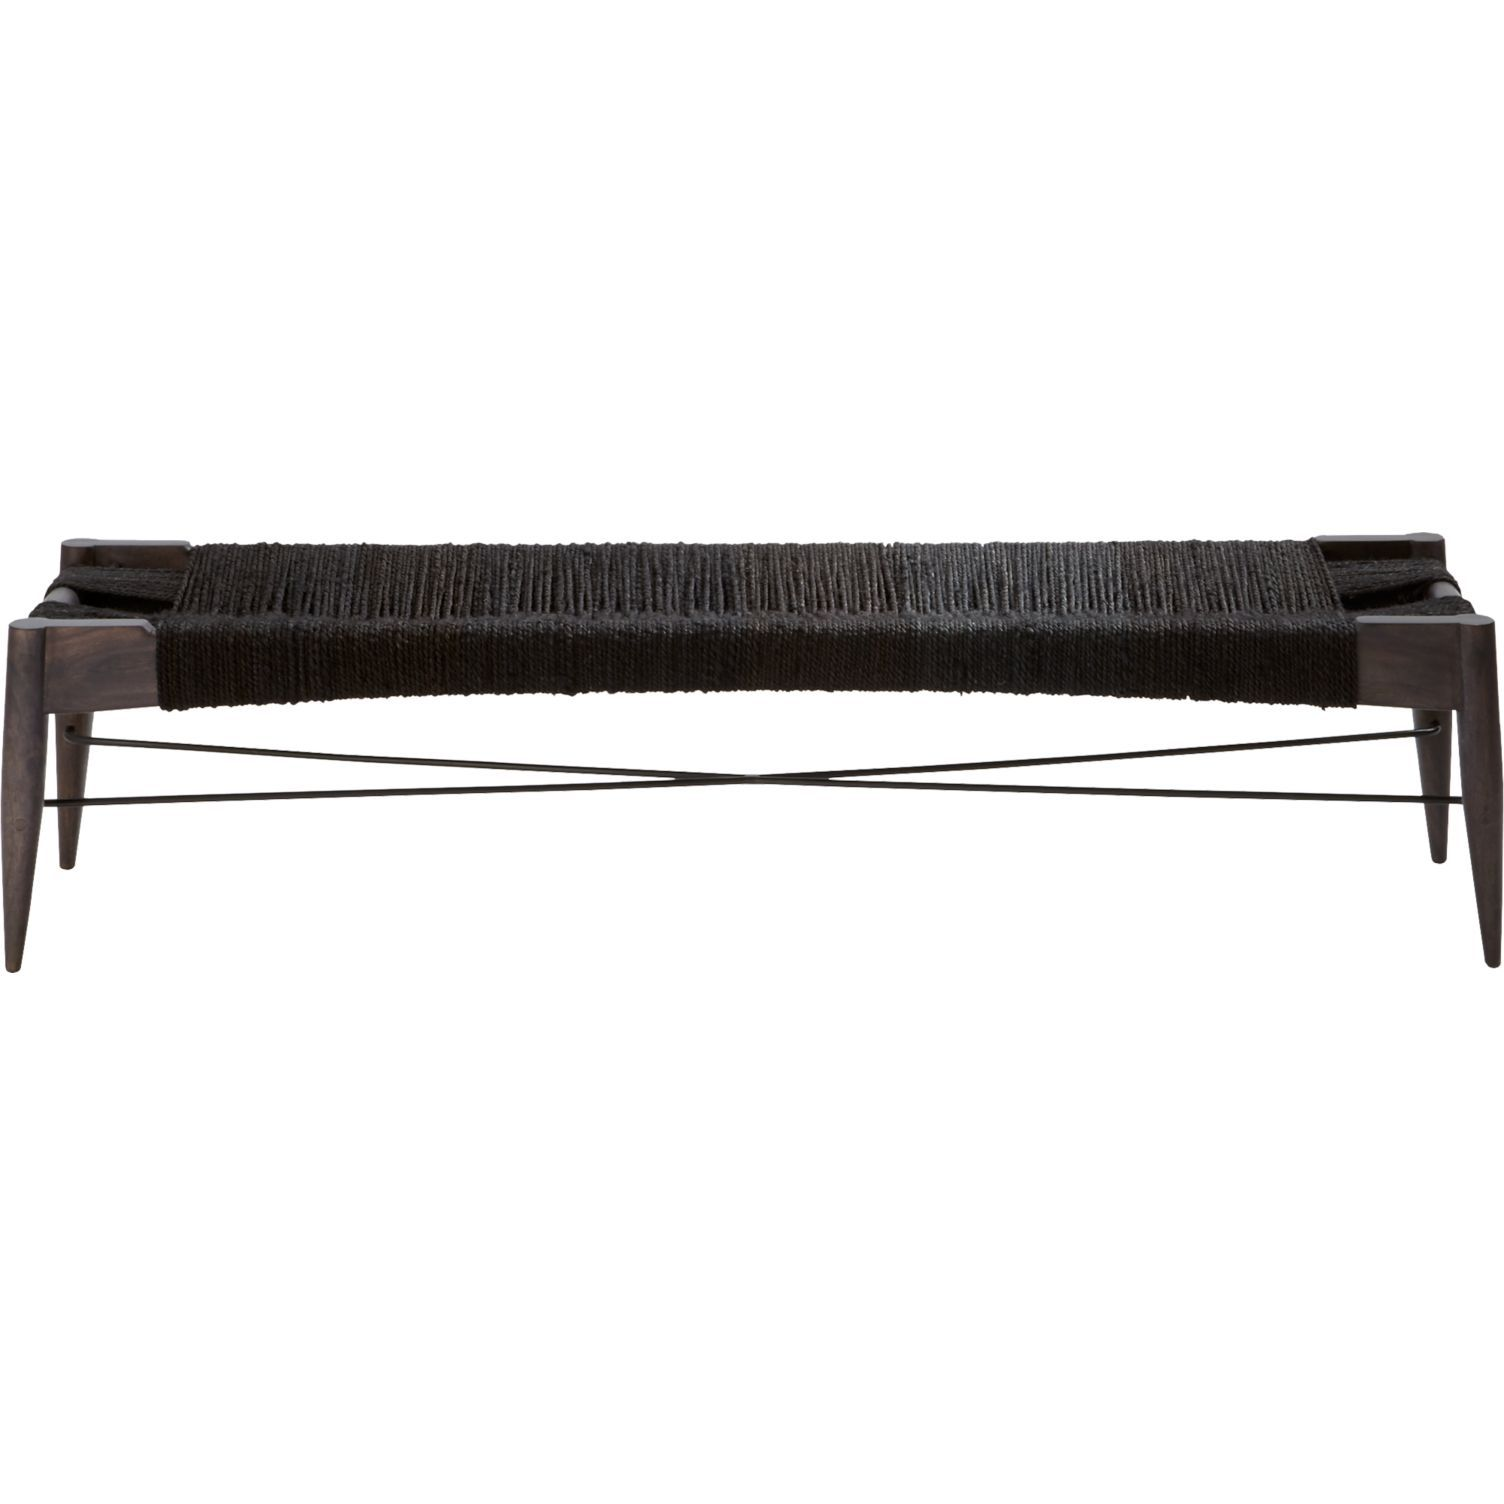 Wrap Large Black Bench